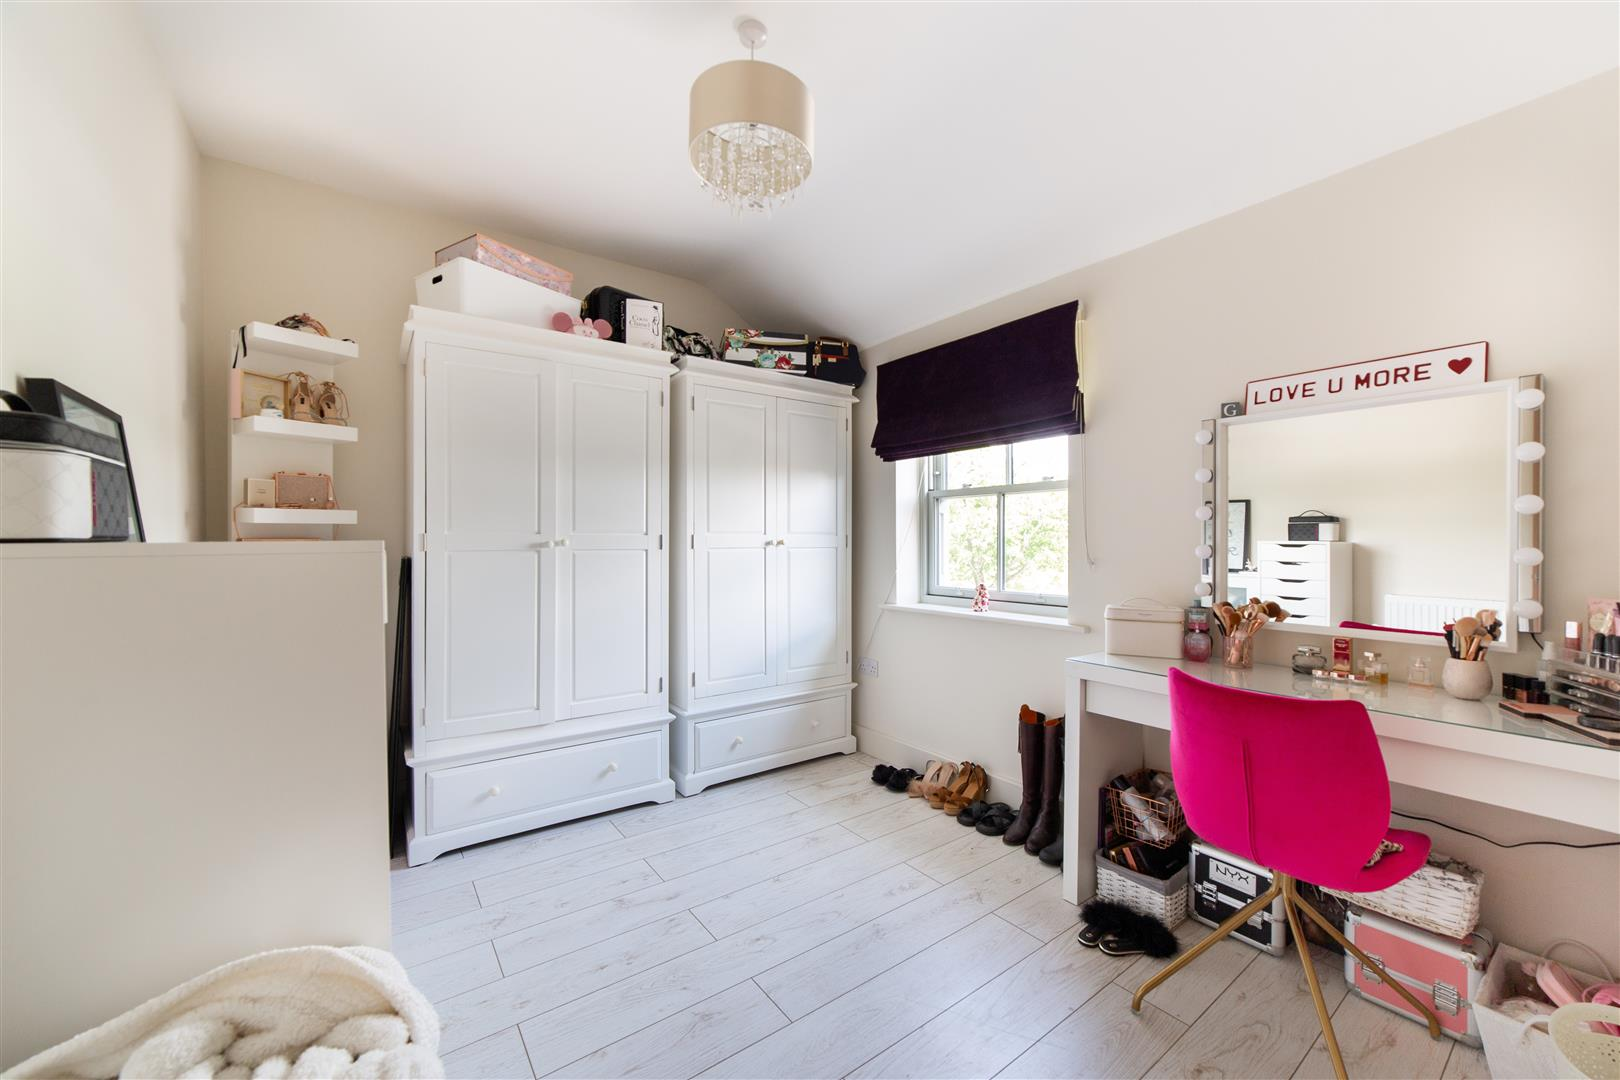 4 bed detached house for sale, Hexham 11